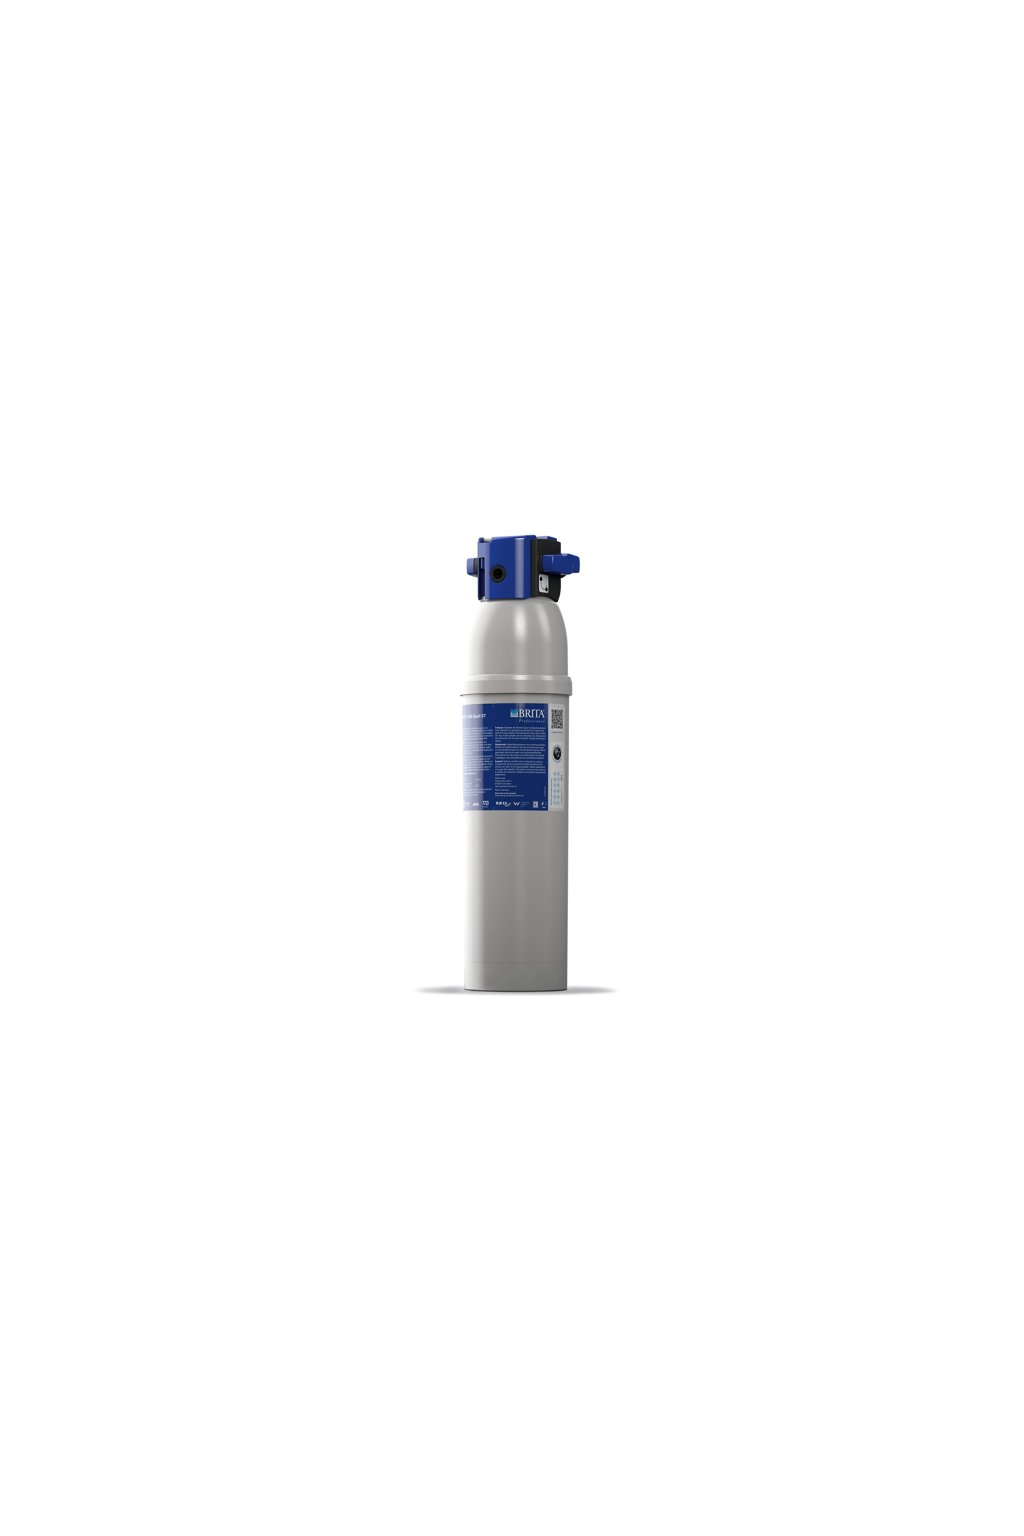 brita tapmodul 2015 purity c150 quell st links